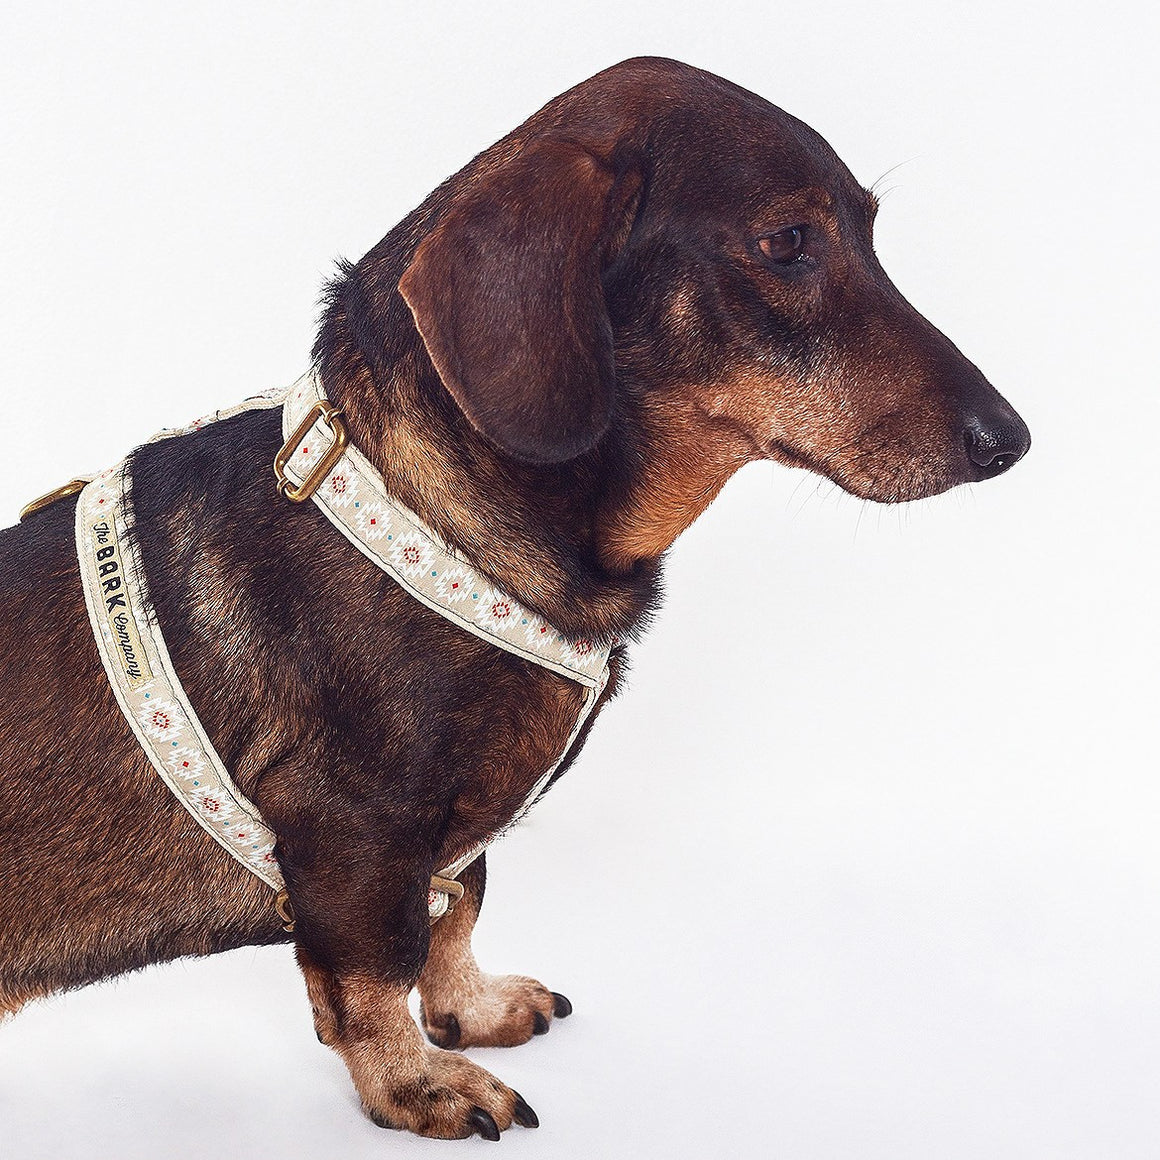 Geronimo dog harness - The Bark Co. Handmade dog Harness